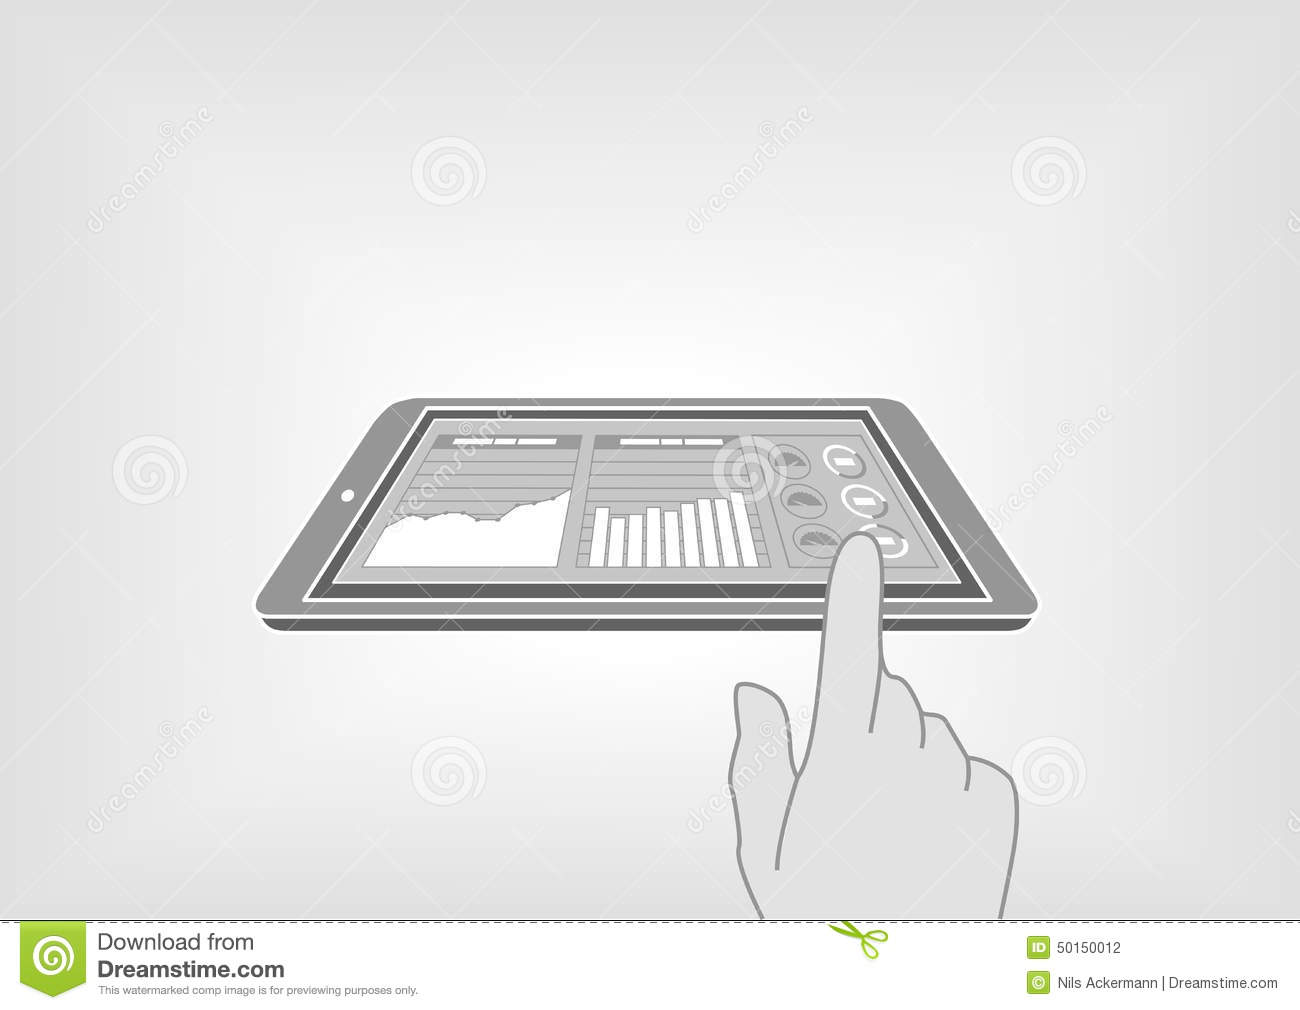 Finger Swiping Smart Phone Or Tablet To Access Digital Information Diagram Of Fingertips Via Dashboard